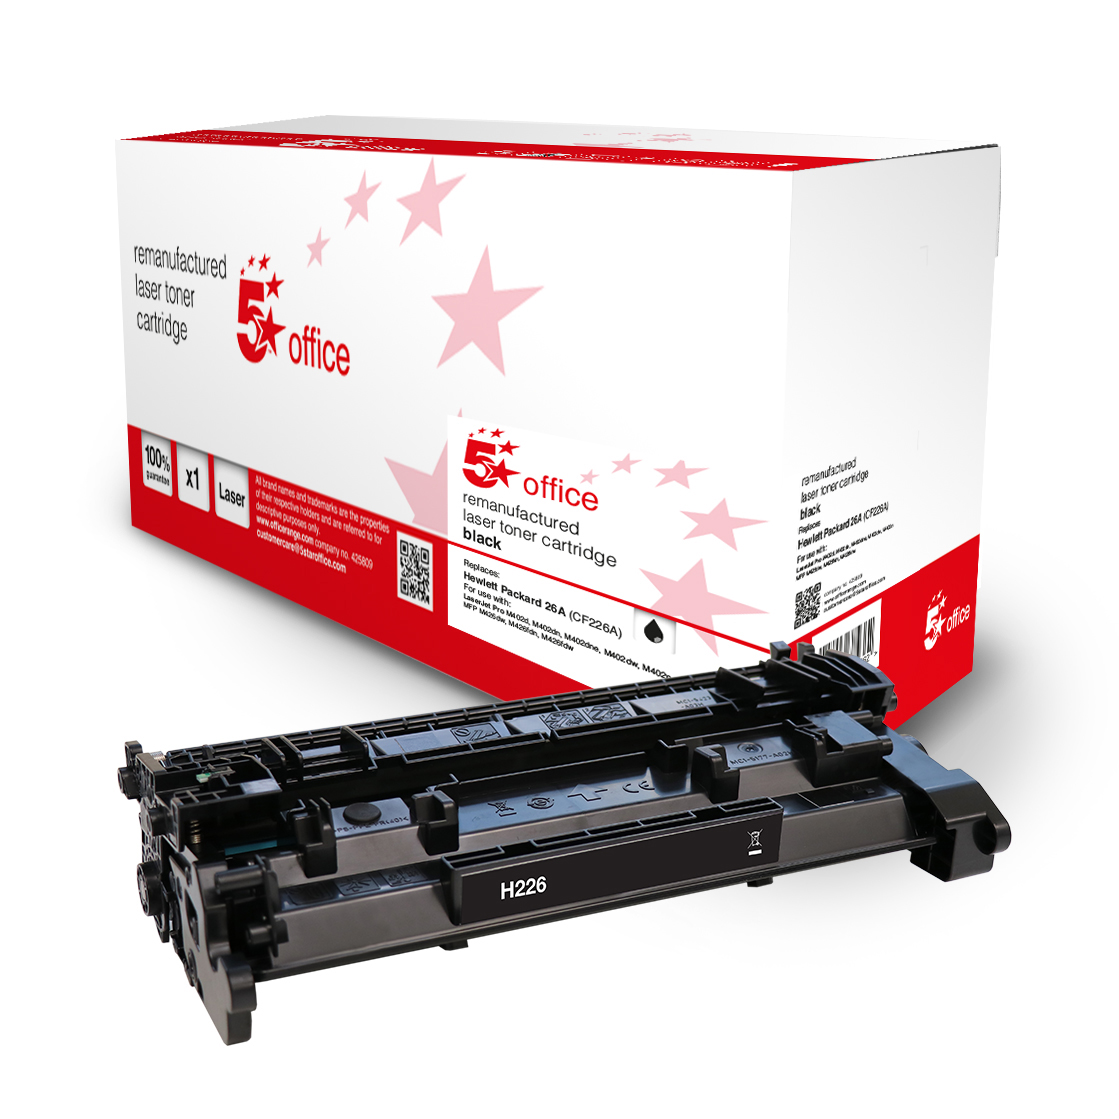 5 Star Office Remanufactured Toner Cartridge Page Life Black 3100pp HP 26A CF226A Alternative